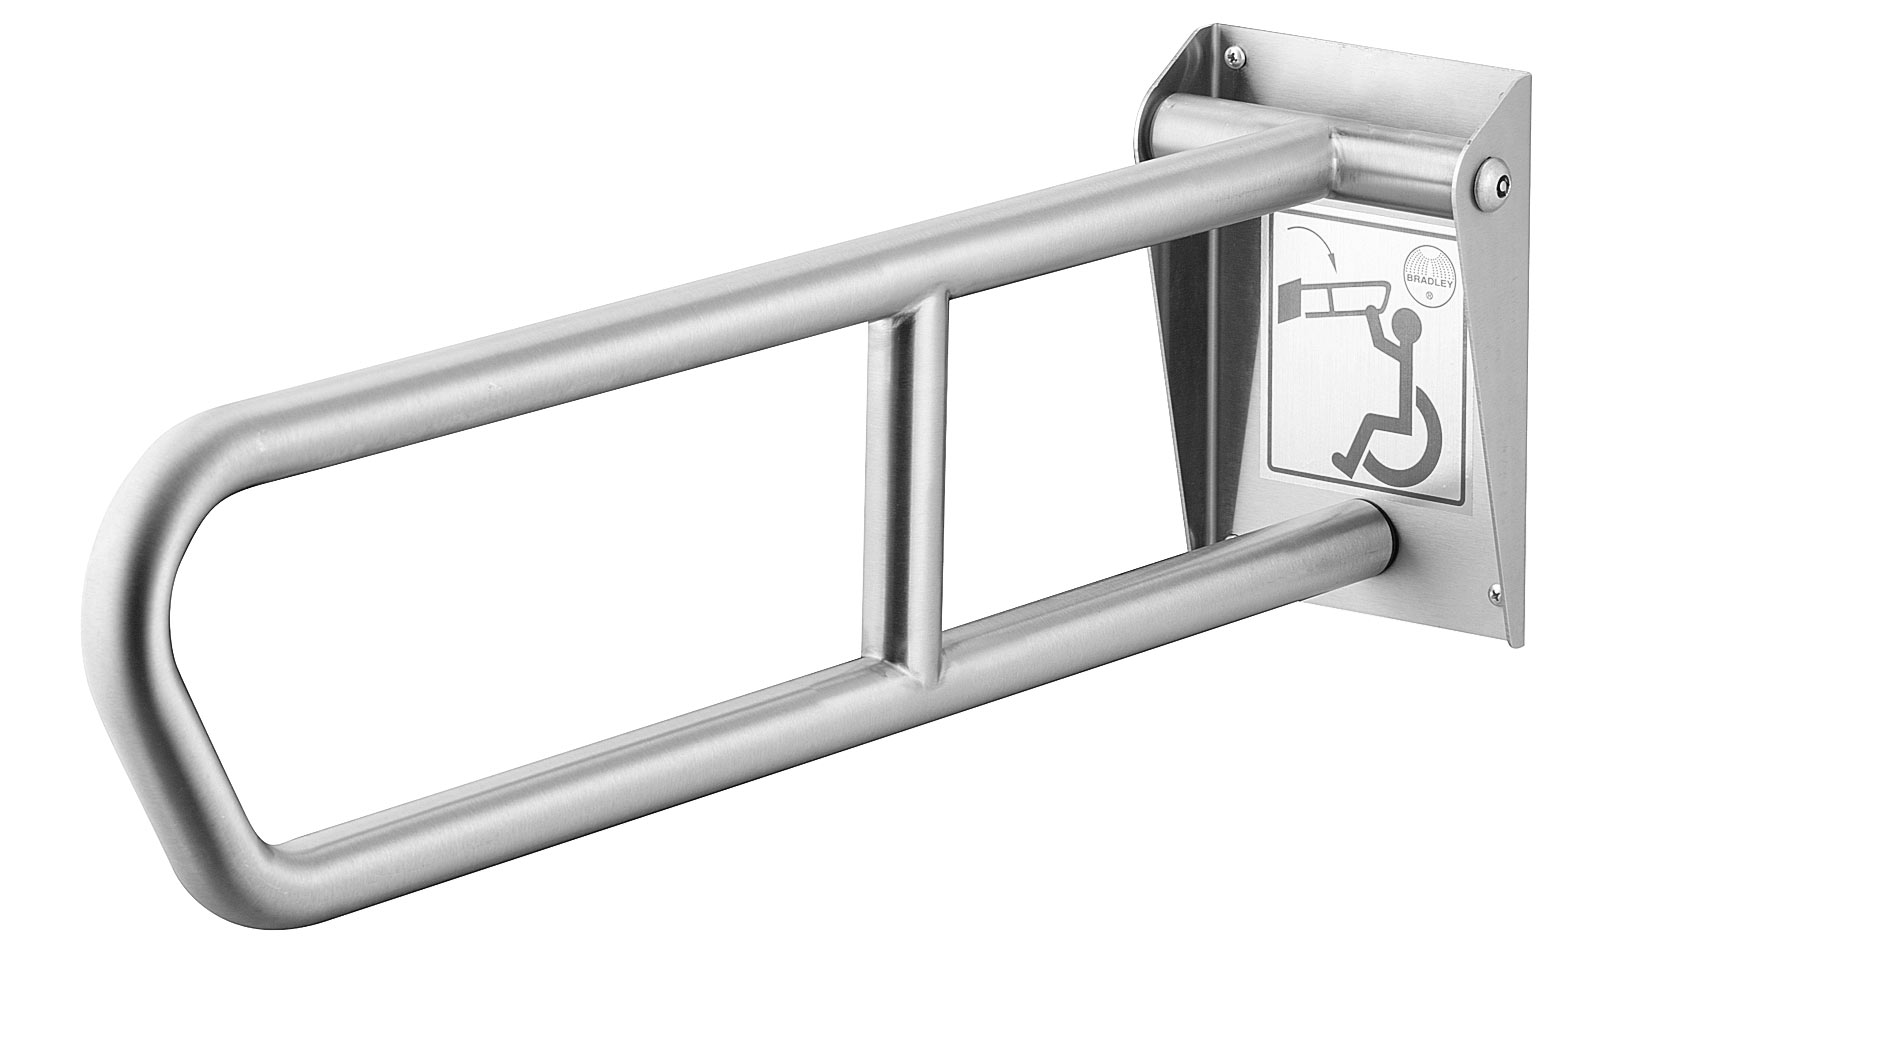 BRADLEY 8372-107000: BX, 1-1/4inch X 29inch, SWING-UP, SAFETY-GRIP FINISH, STAINLESS STEEL GRAB BAR